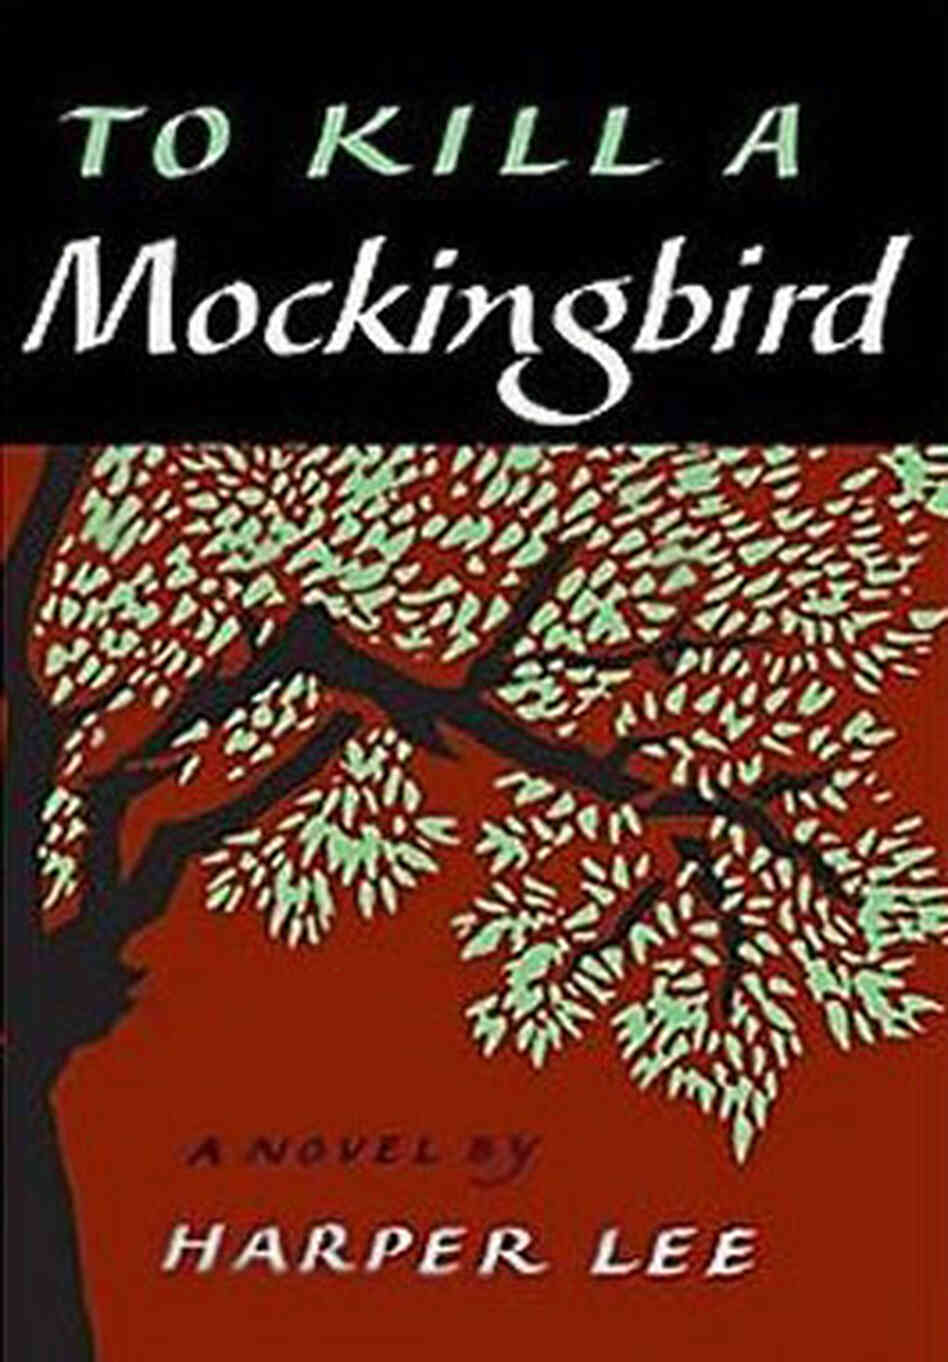 http://www.amazon.com/Kill-Mockingbird-2-Book/dp/B011P5GW5K/ref=sr_1_1_ha?s=digital-text&ie=UTF8&qid=1458788238&sr=1-1&keywords=to+kill+a+mockingbird